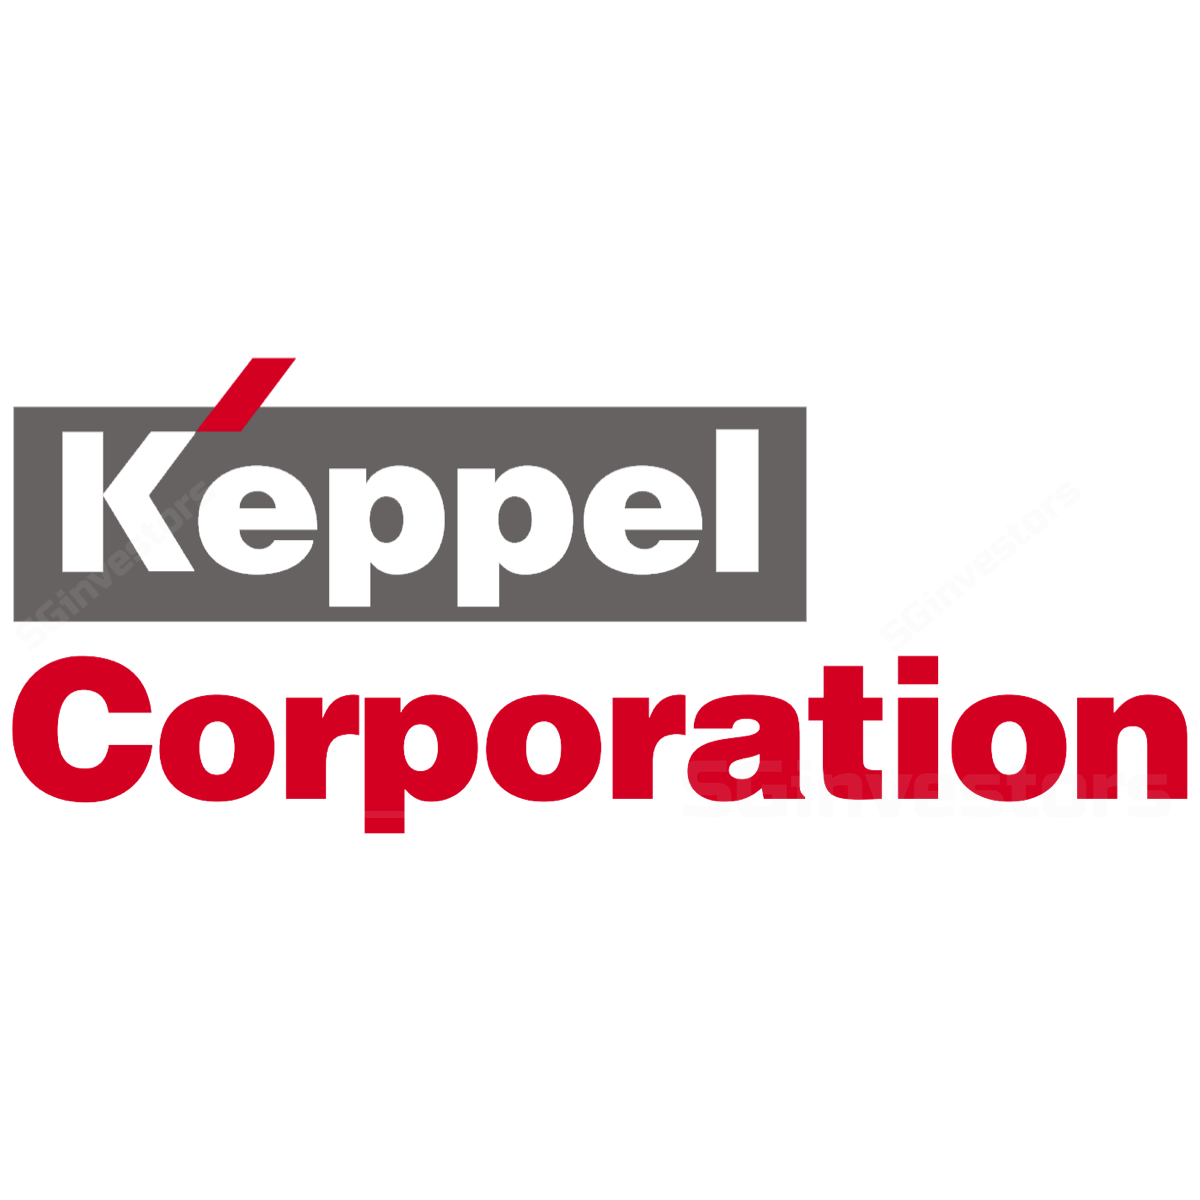 Keppel Corporation - OCBC Investment 2017-11-29: Favourable Long-term Prospects